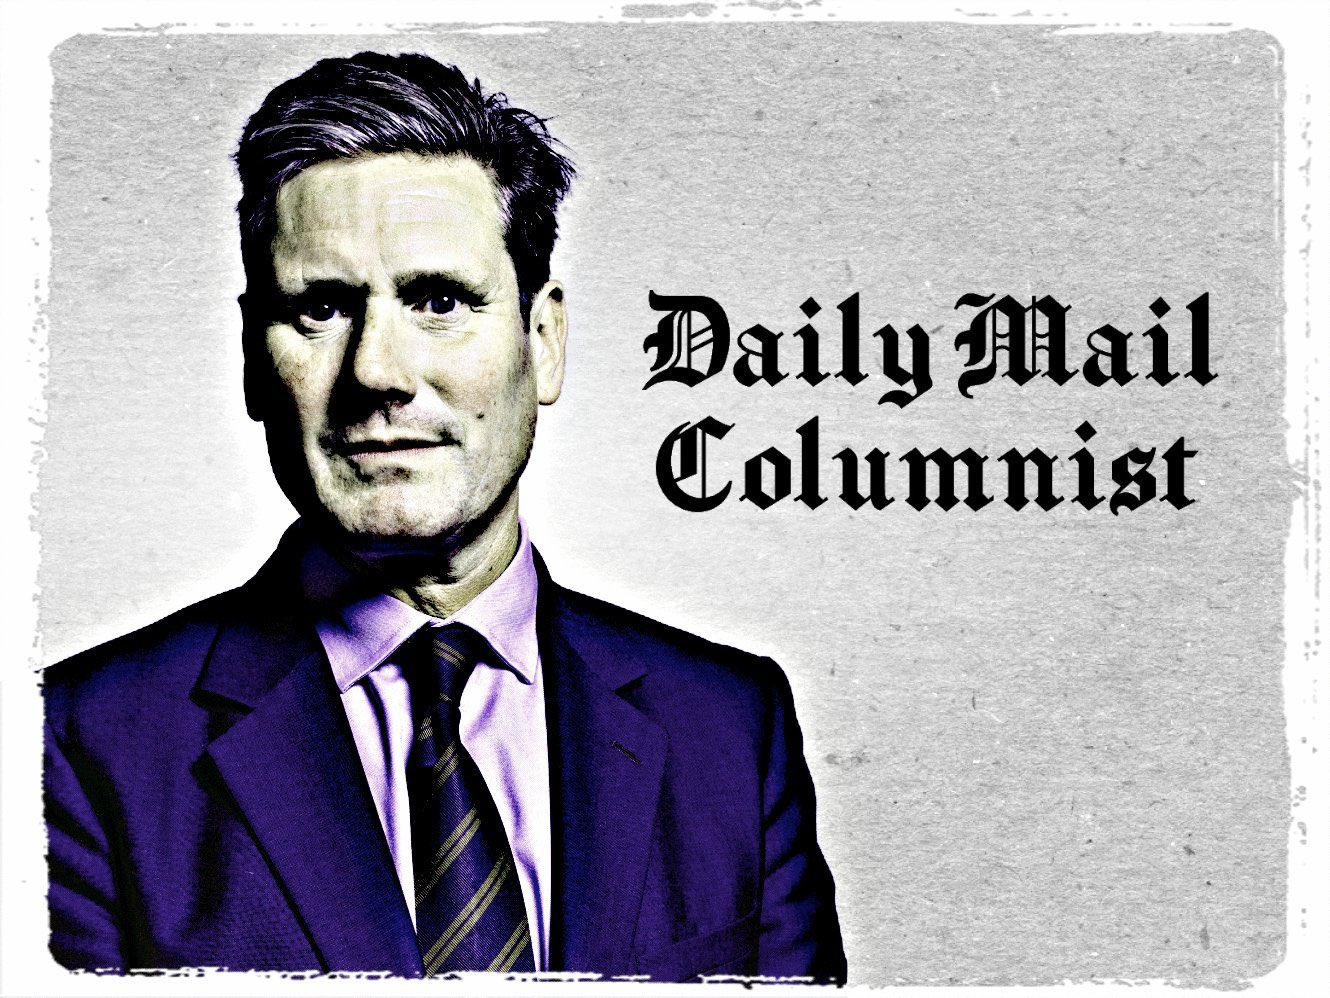 Starmer's Daily Mail article  sparks consternation